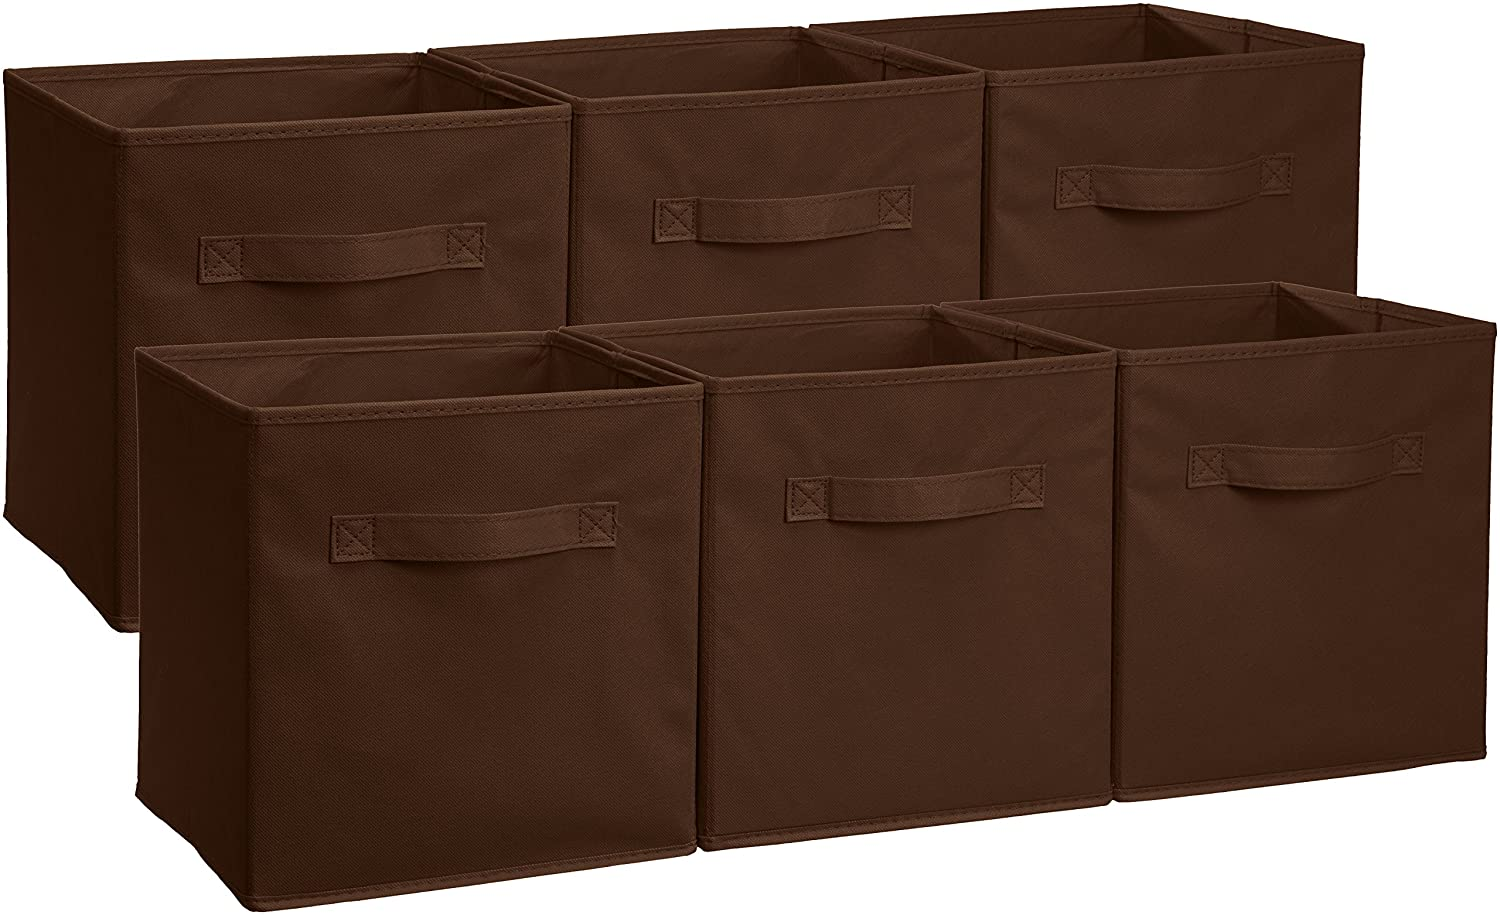 AmazonBasics Foldable Storage Cubes - 6-Pack, Brown